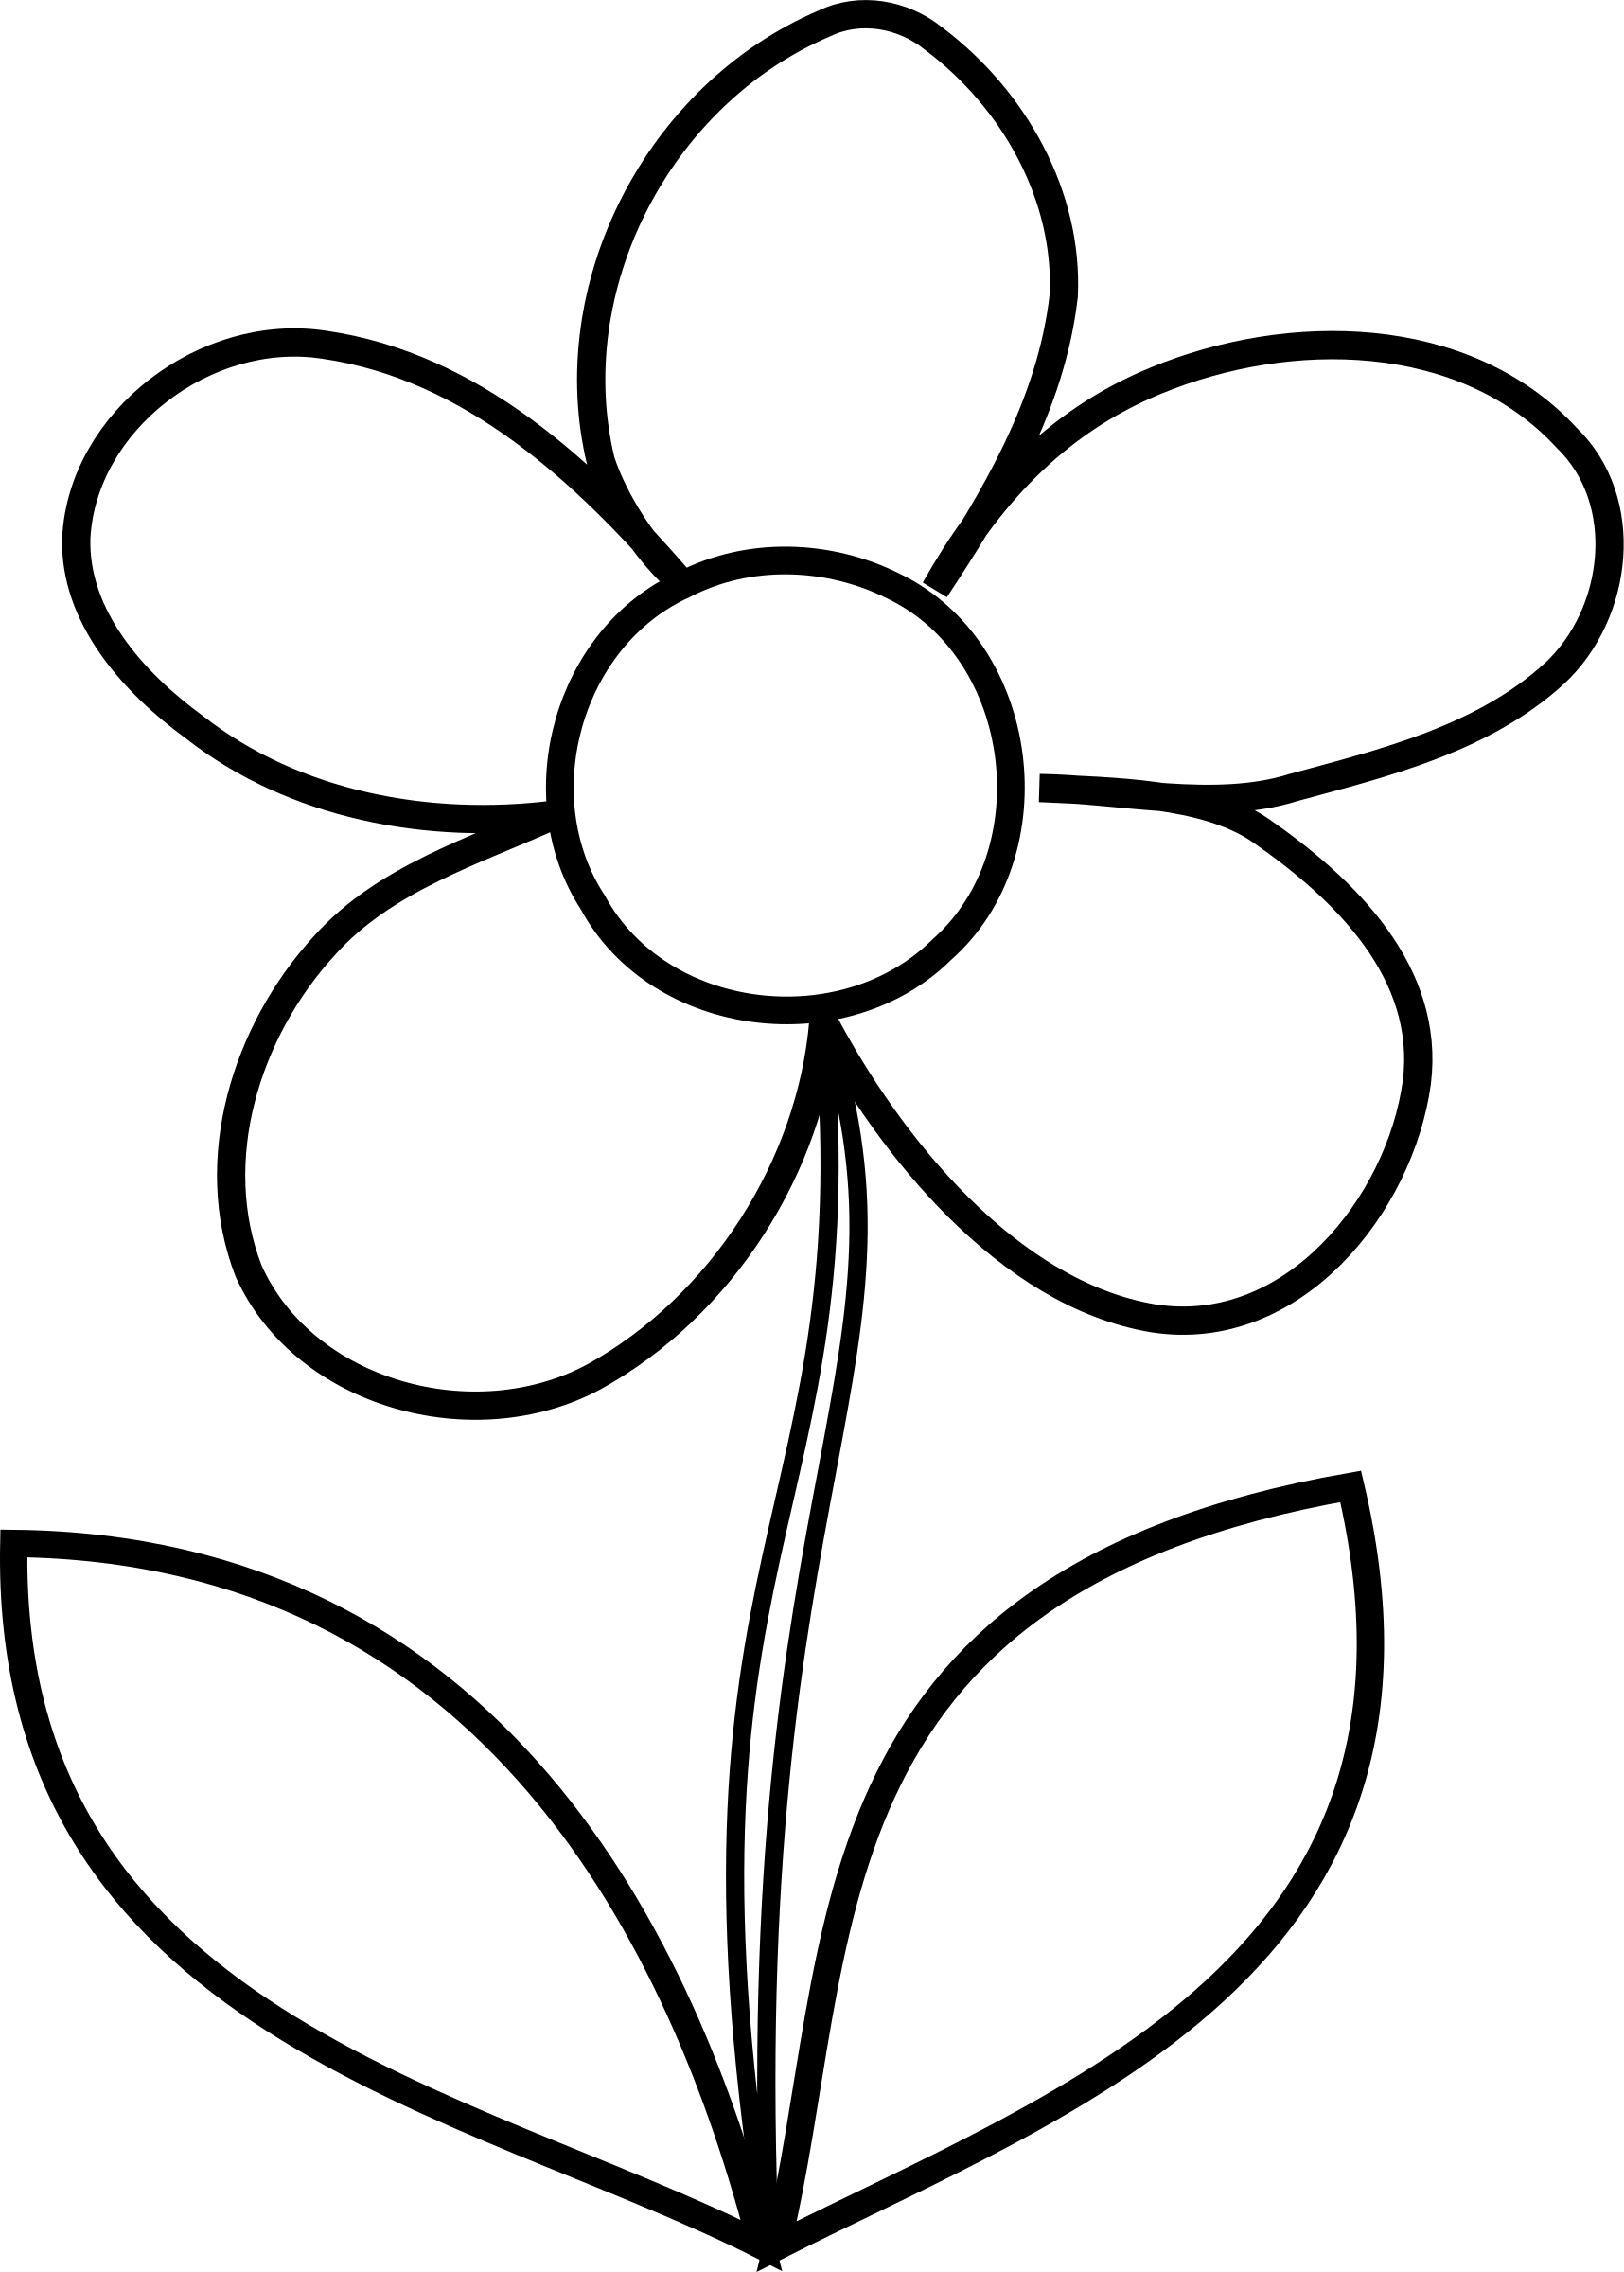 Simple flower clipart image library library Clipart - Simple Flower bw image library library